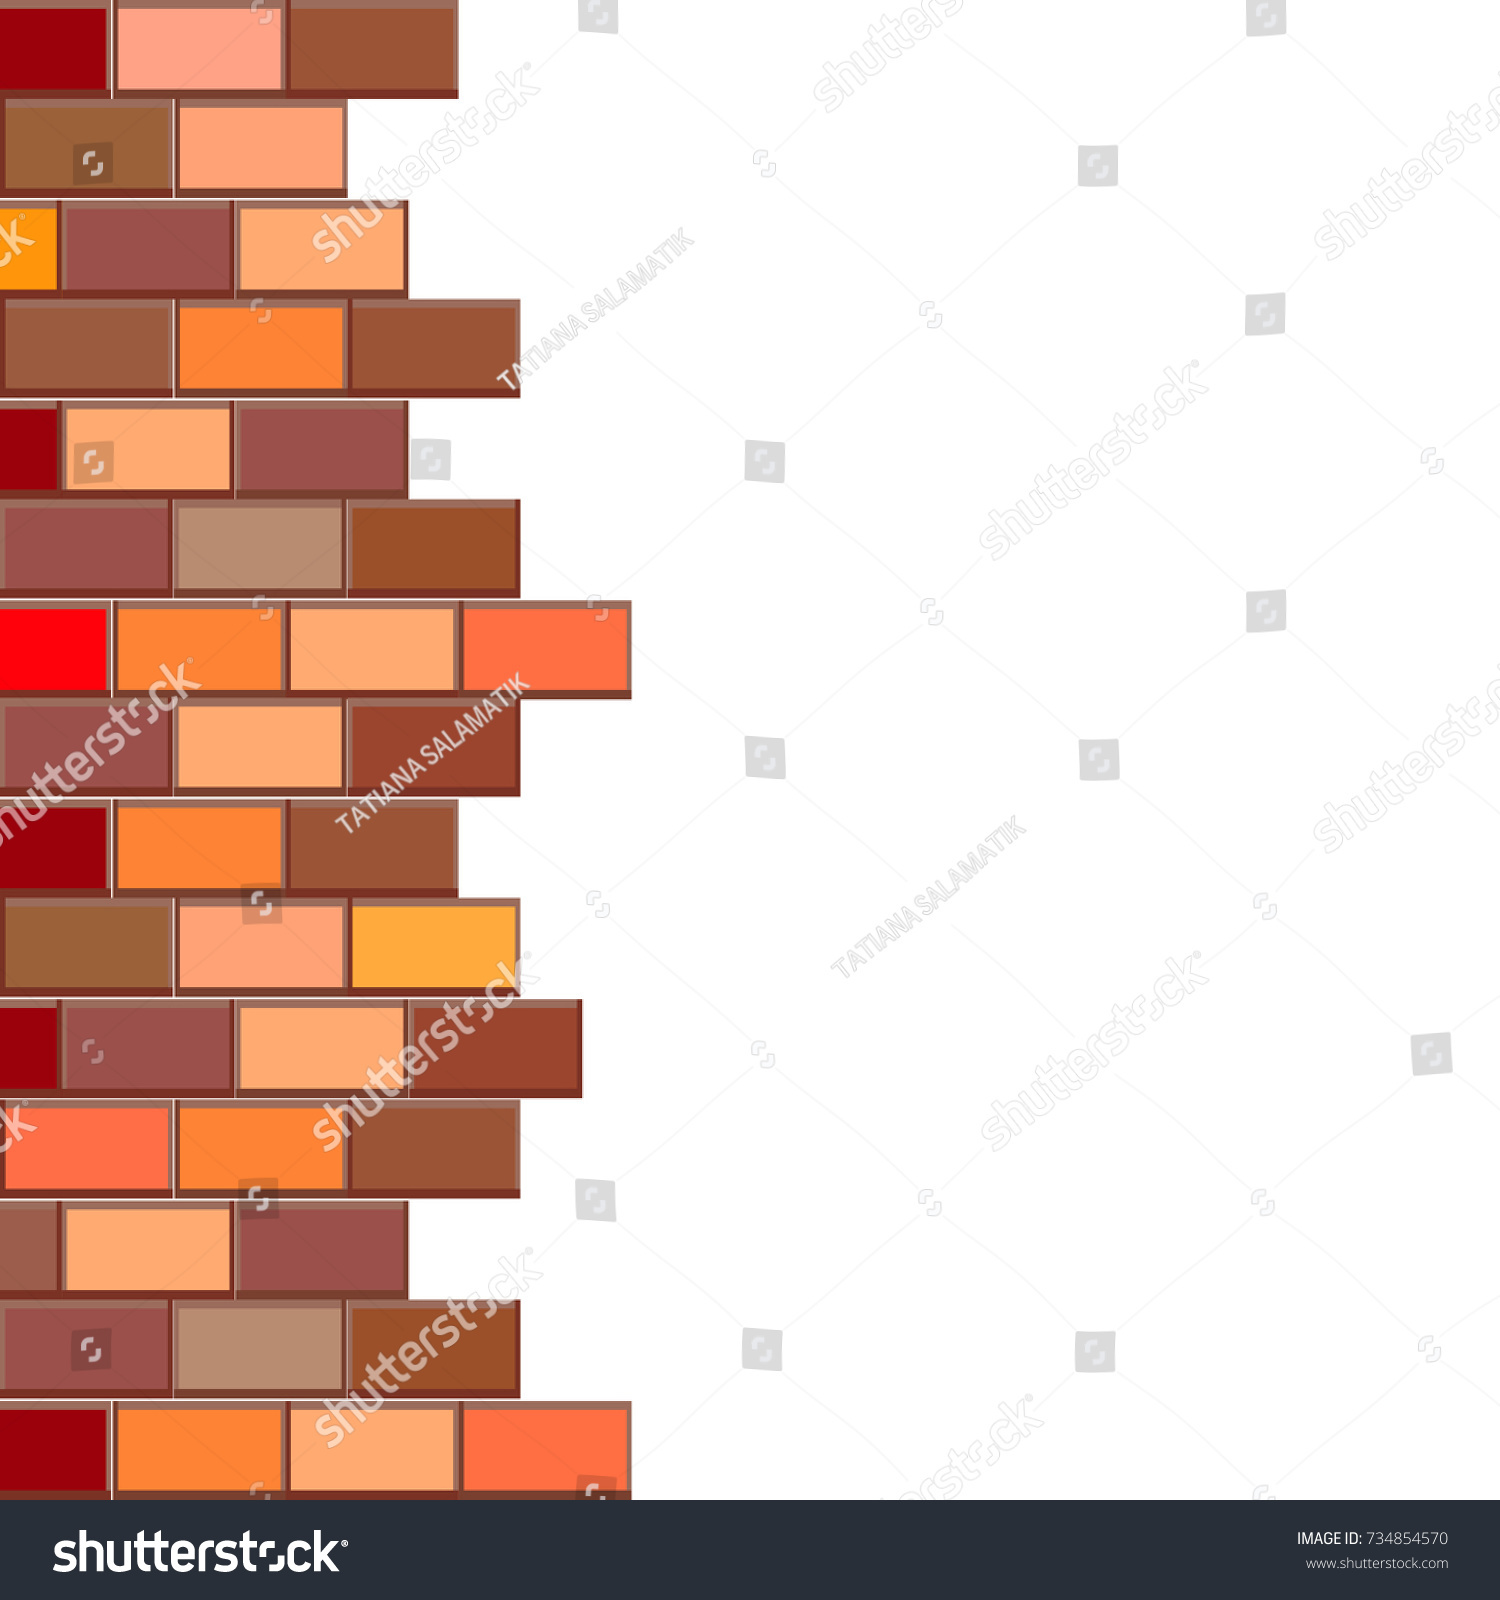 broken brick wall place your design stock vector 734854570 rh shutterstock com Brick Wall Sketch Clip Art Black and White Brick Wall